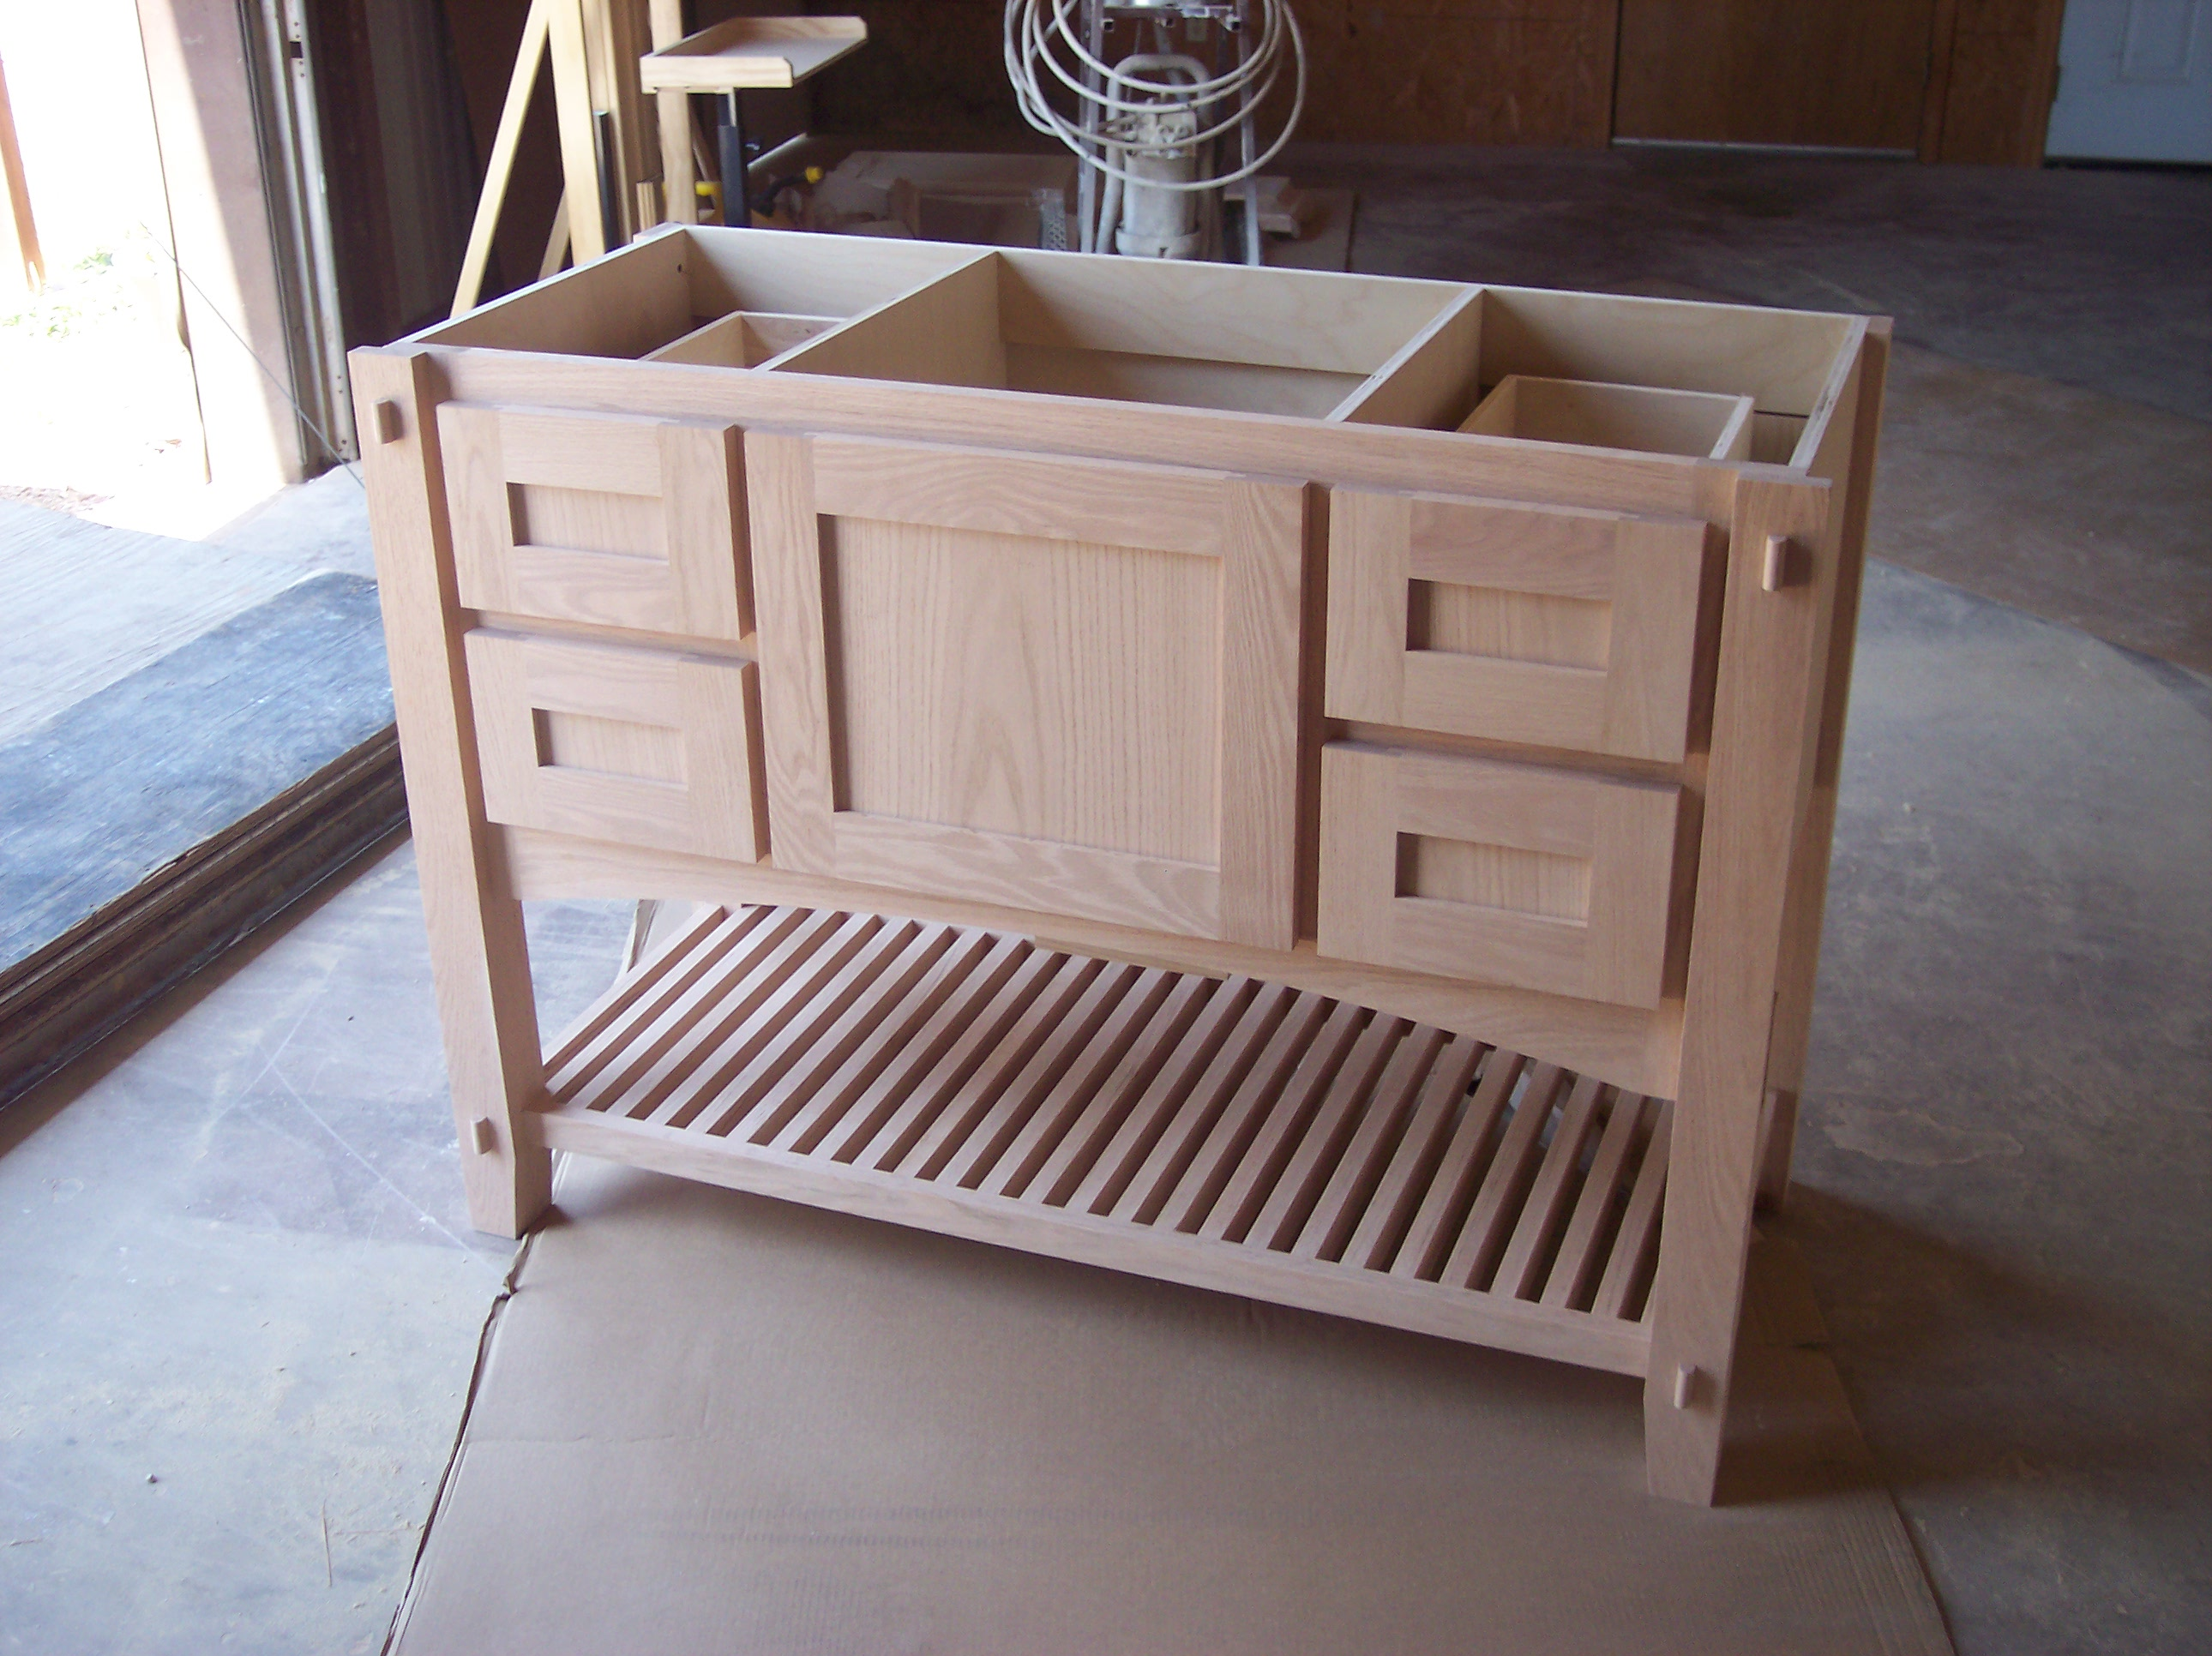 cabinet for shoes and purses custom by JB Murphy co